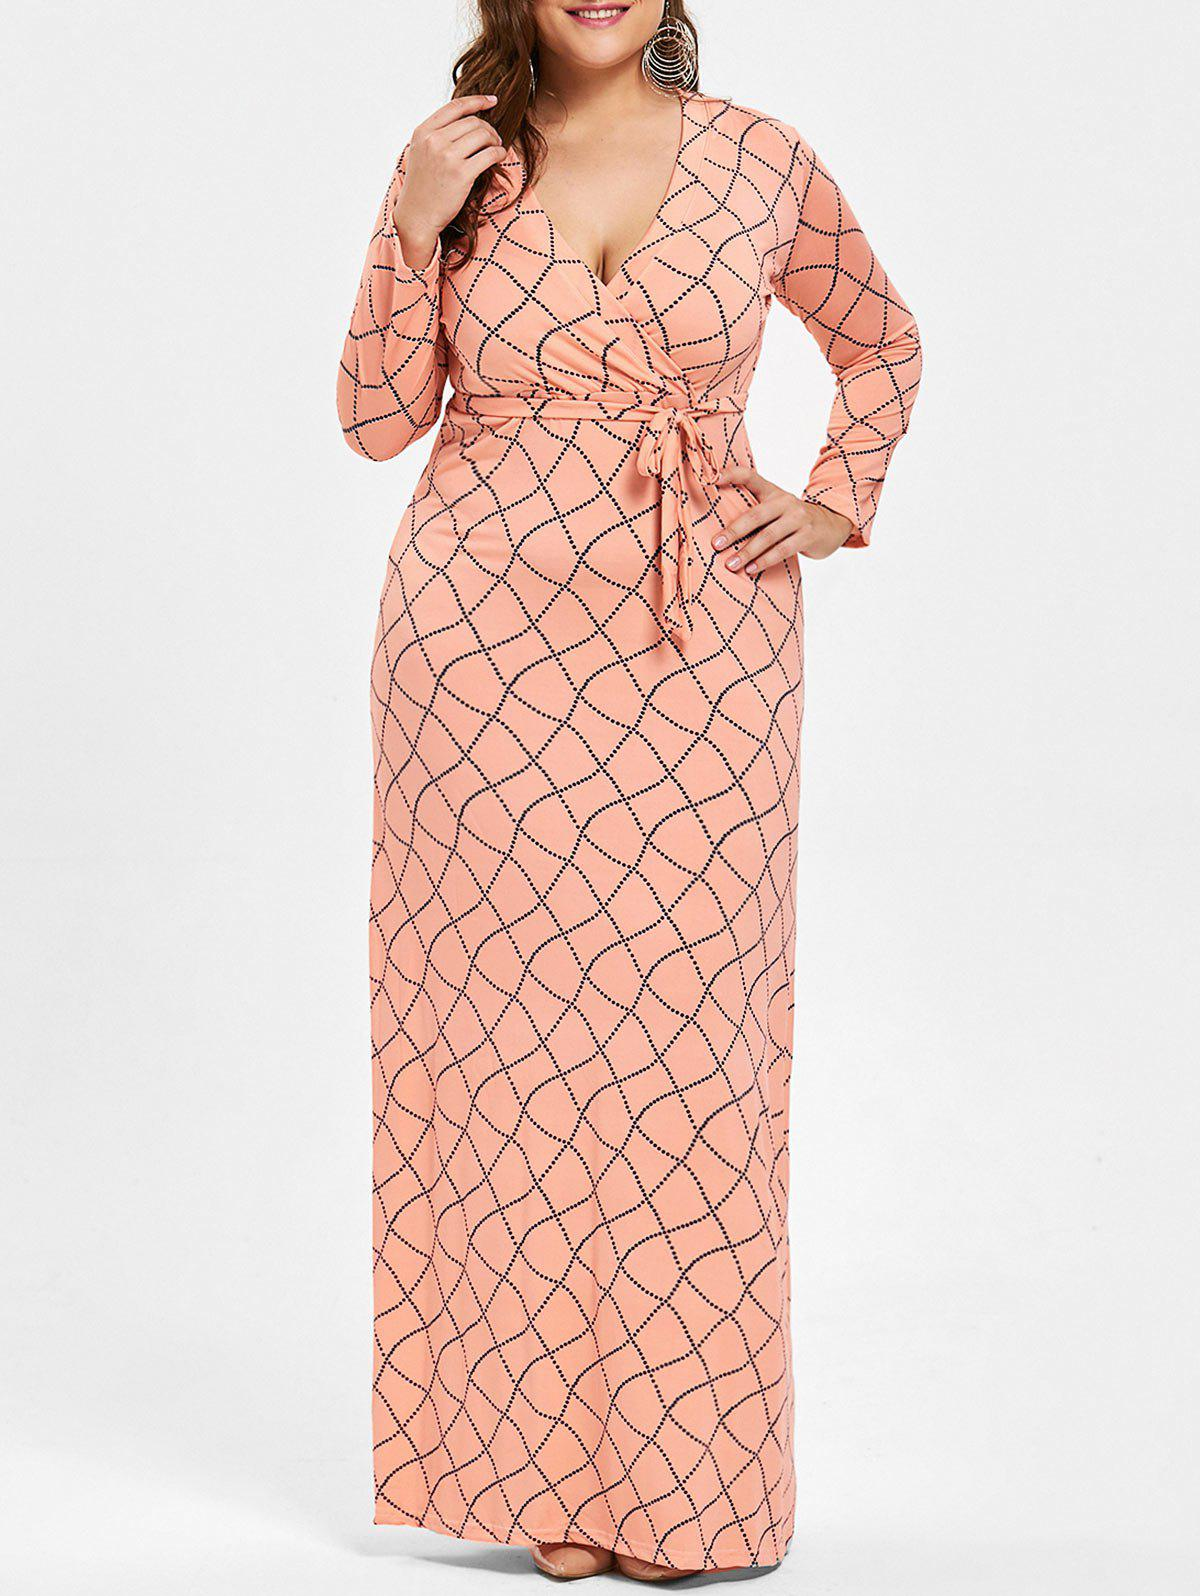 Plus Size Belted Surplice Geometric Maxi DressWOMEN<br><br>Size: 4XL; Color: MELON YELLOW; Style: Casual; Material: Cotton,Polyester; Silhouette: A-Line; Dresses Length: Floor-Length; Neckline: Plunging Neck; Sleeve Length: Long Sleeves; Pattern Type: Geometric; With Belt: Yes; Season: Fall; Weight: 0.3900kg; Package Contents: 1 x Dress 1 x Belt;